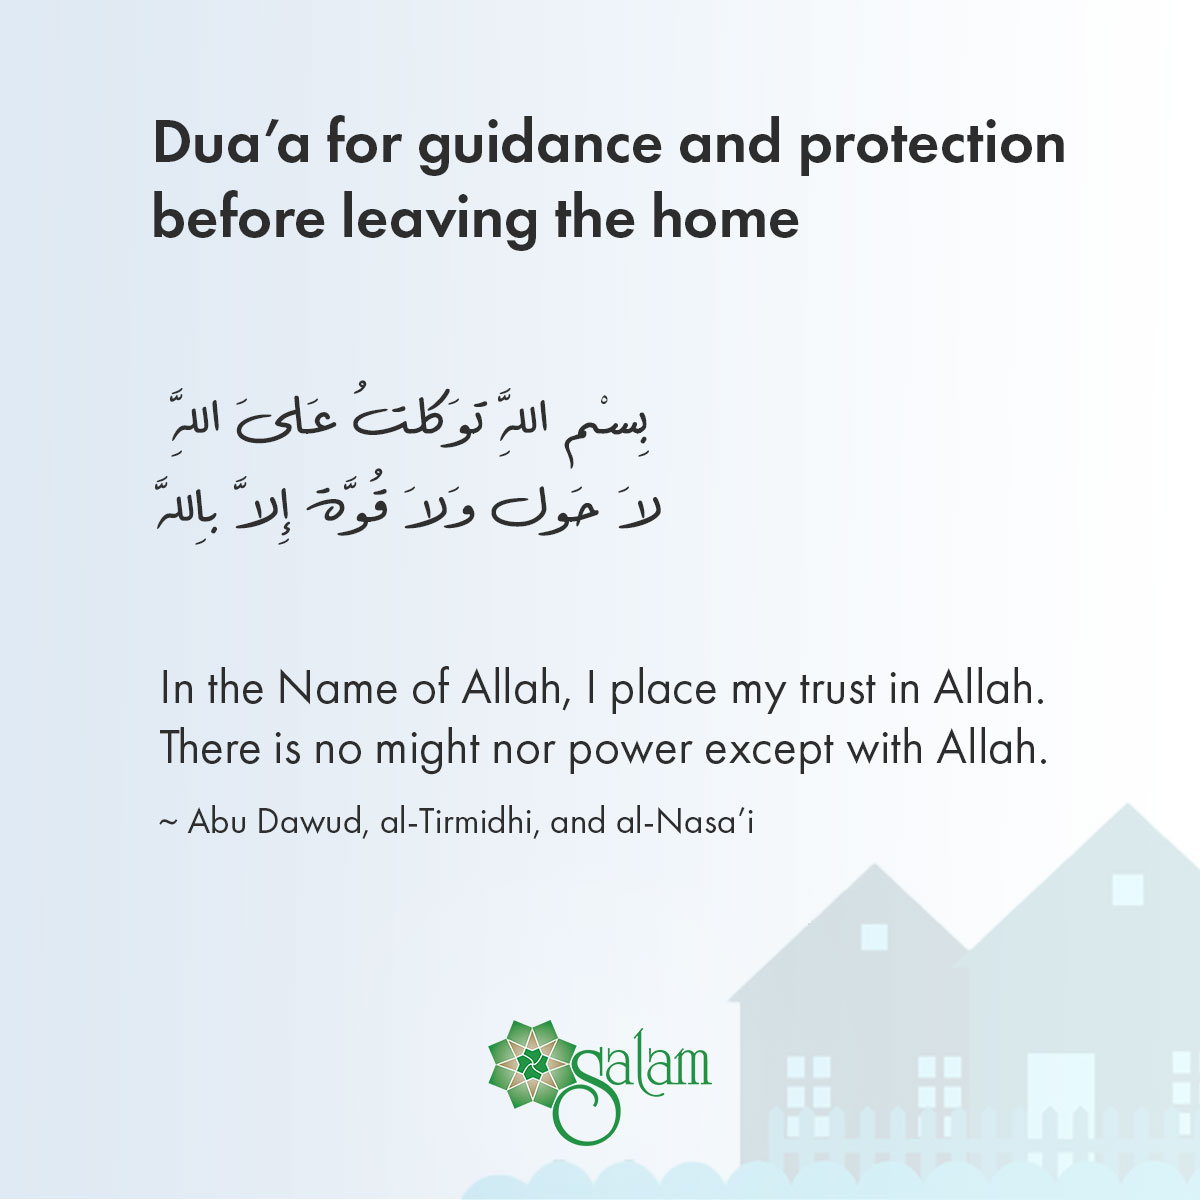 Duaa for guidance and protection before leaving the home